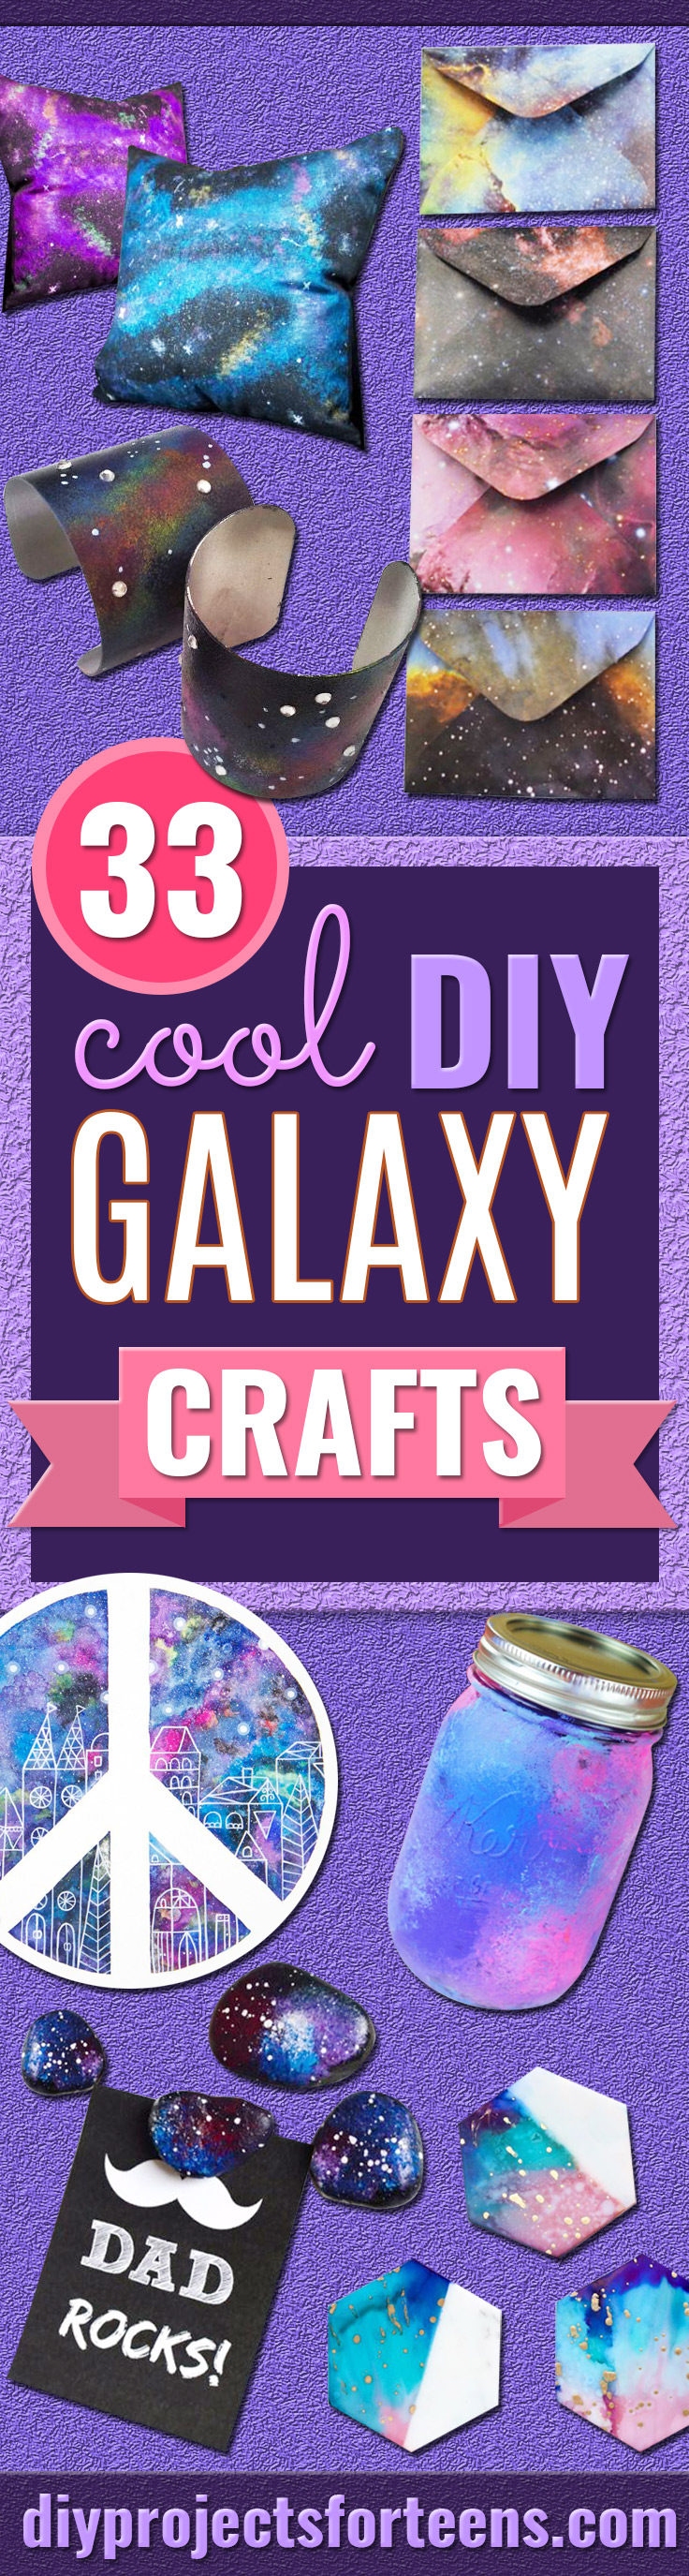 Galaxy DIY Crafts - Easy Room Decor, Cool Clothes, Fun Fabric Ideas and Painting Projects - Food, Cookies and Cupcake Recipes - Nebula Galaxy In A Jar - Art for Your Bedroom - Shirt, Backpack, Soap, Decorations for Teens, Kids and Adults http://diyprojectsforteens.com/galaxy-crafts